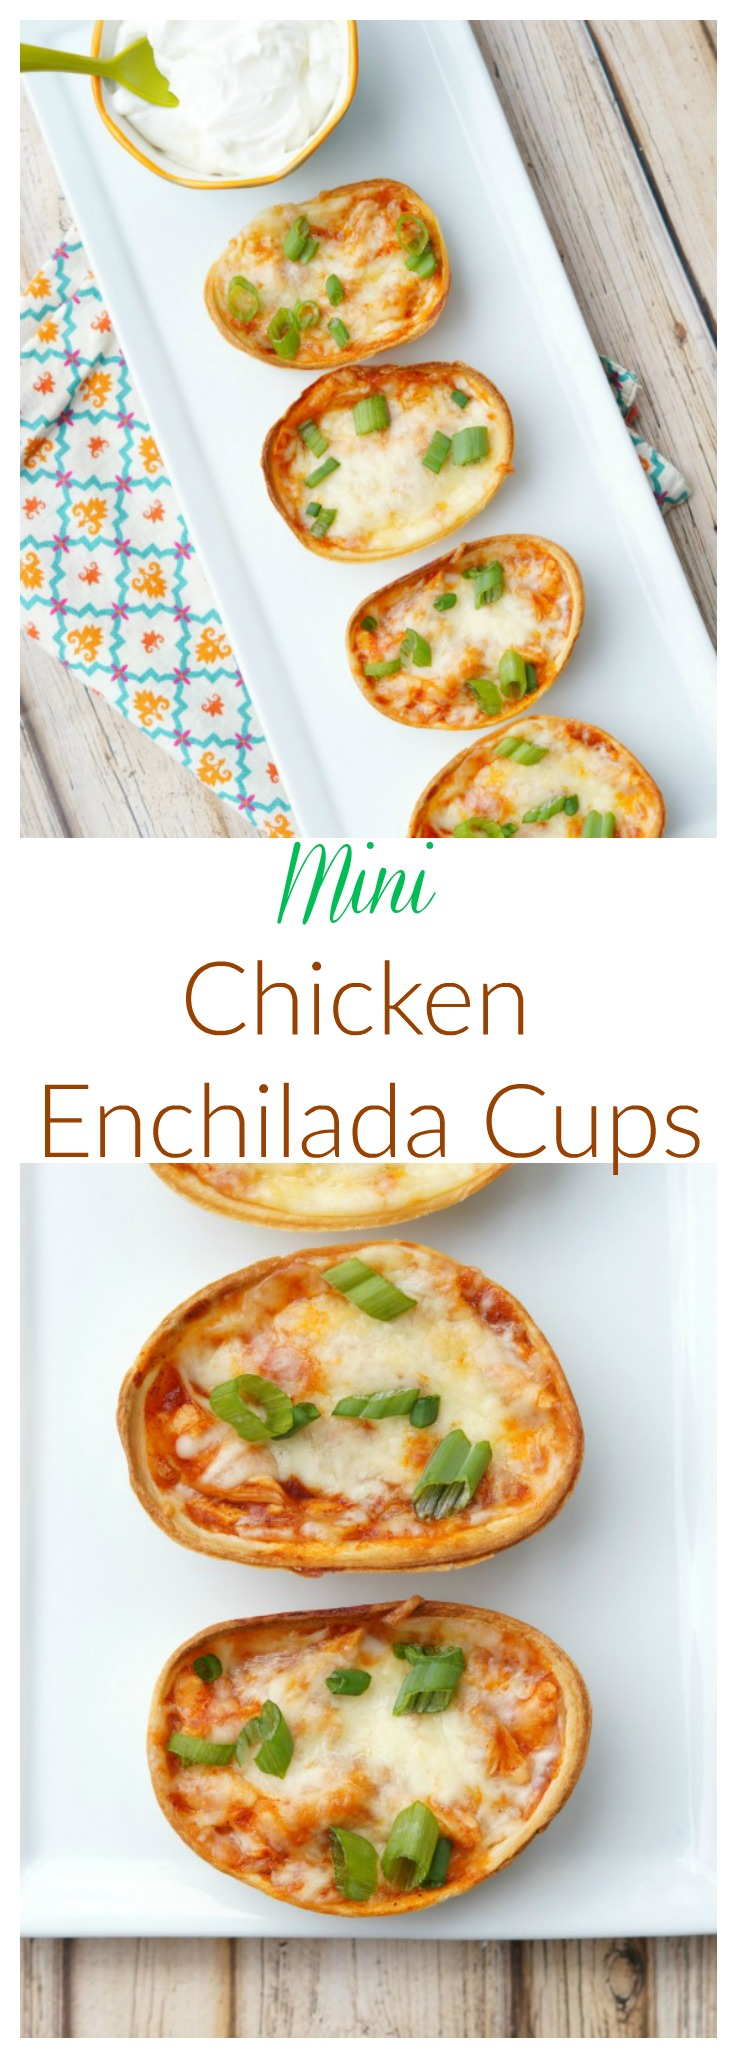 Easy Mini Chicken Enchilada Cups